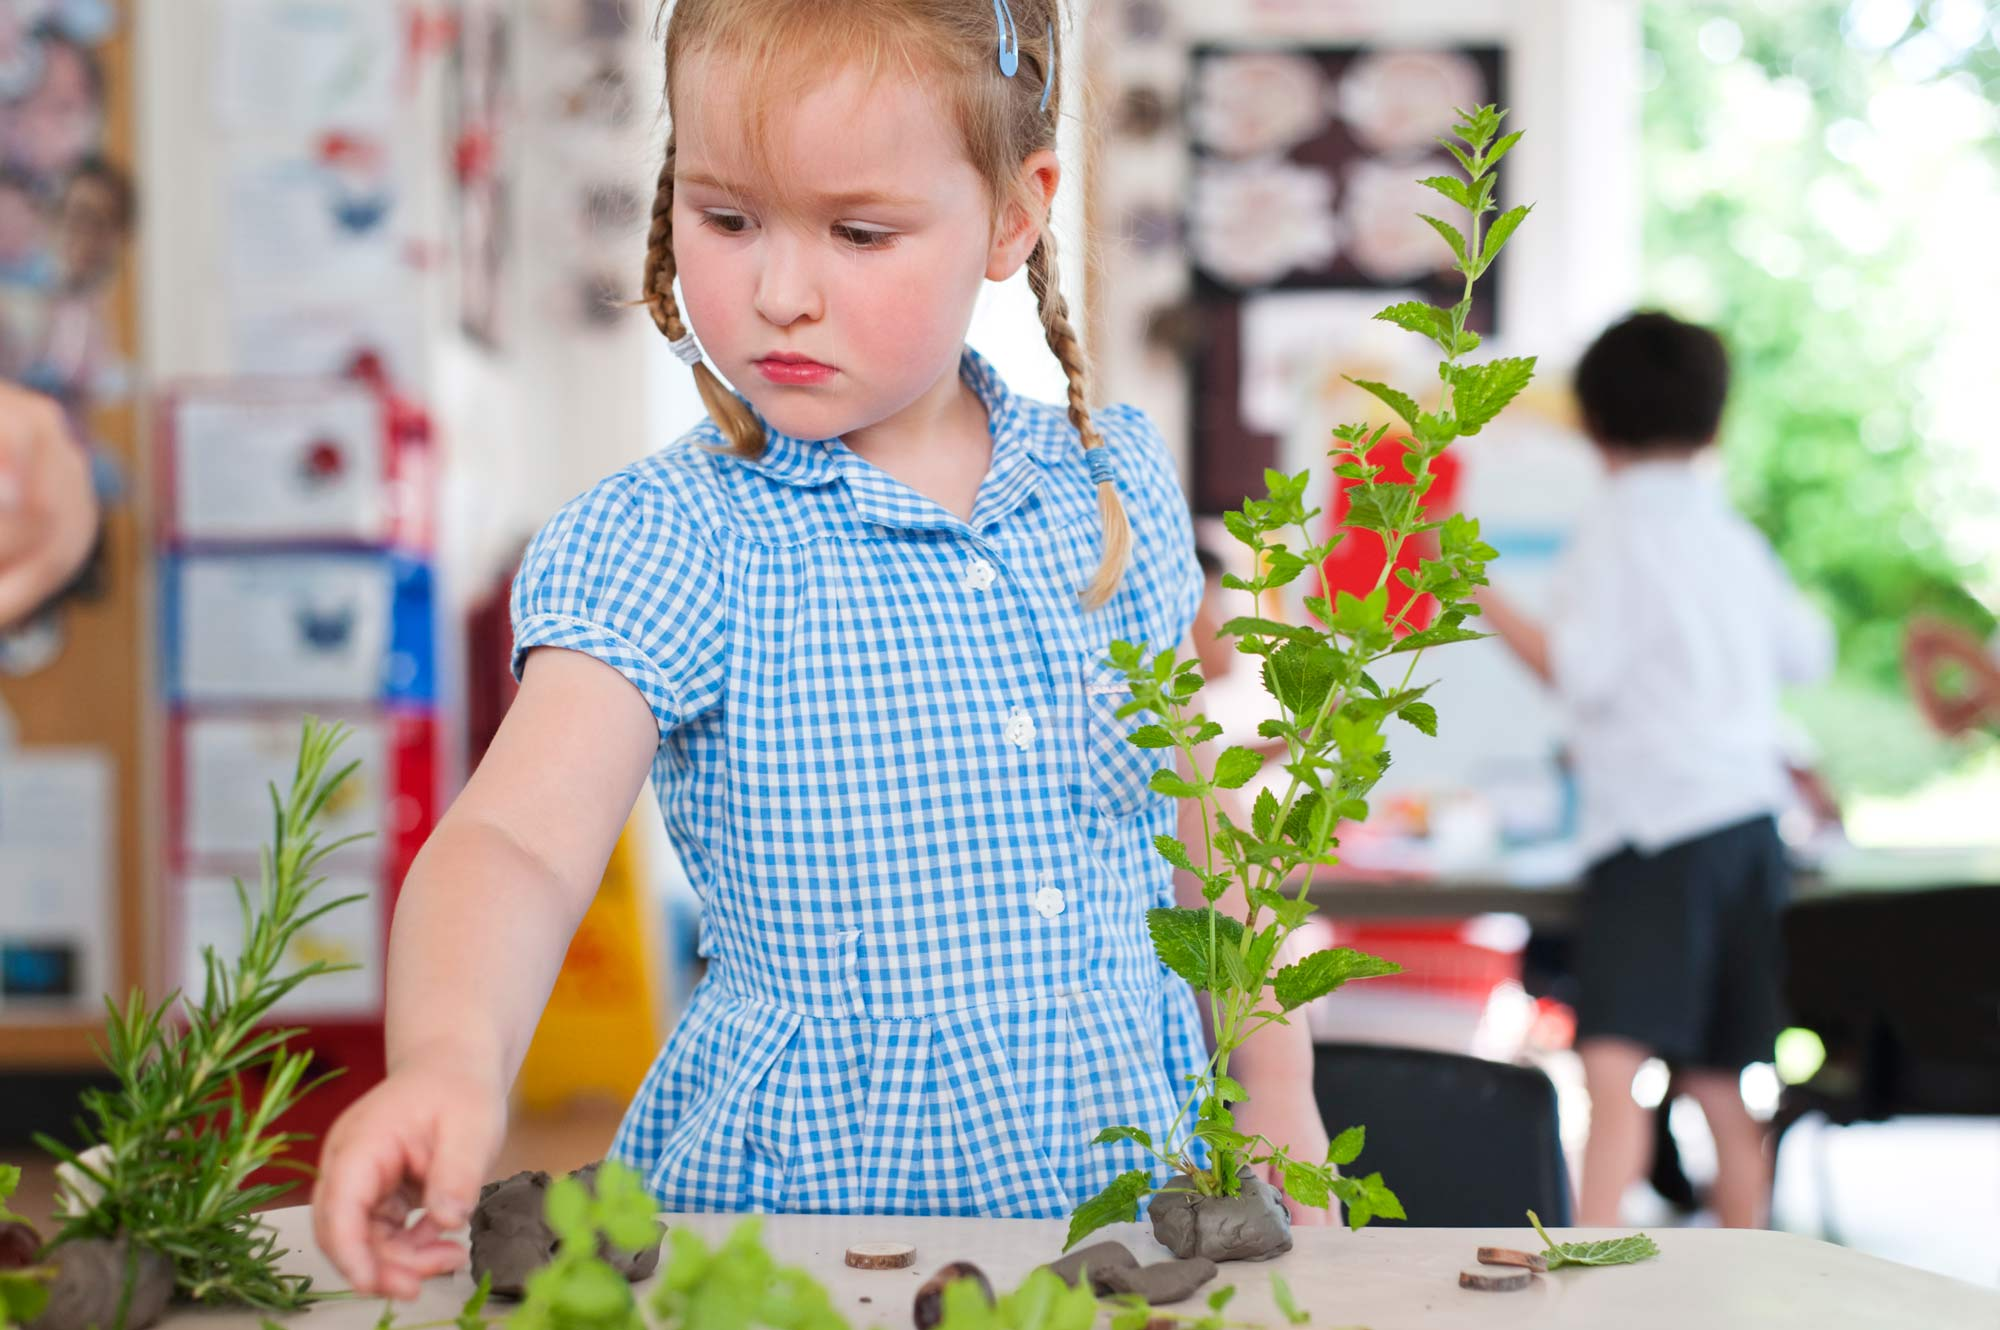 School pupil learning with plants